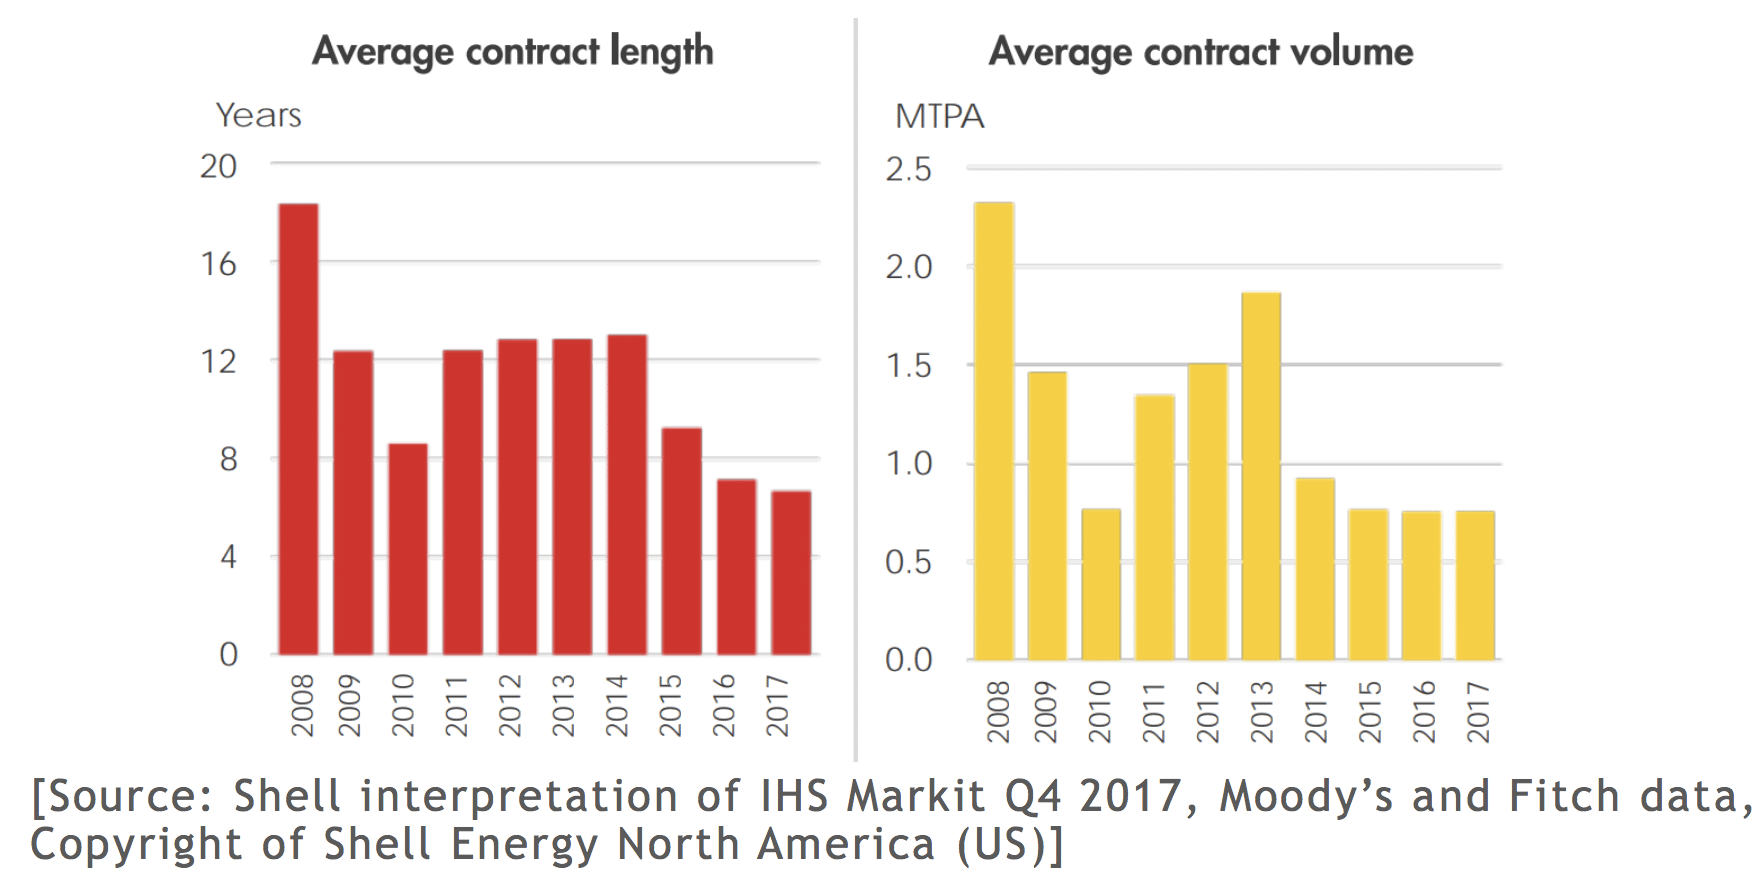 Shell-IHS-Markit-Moody-Fitch-Data-cQuant.io